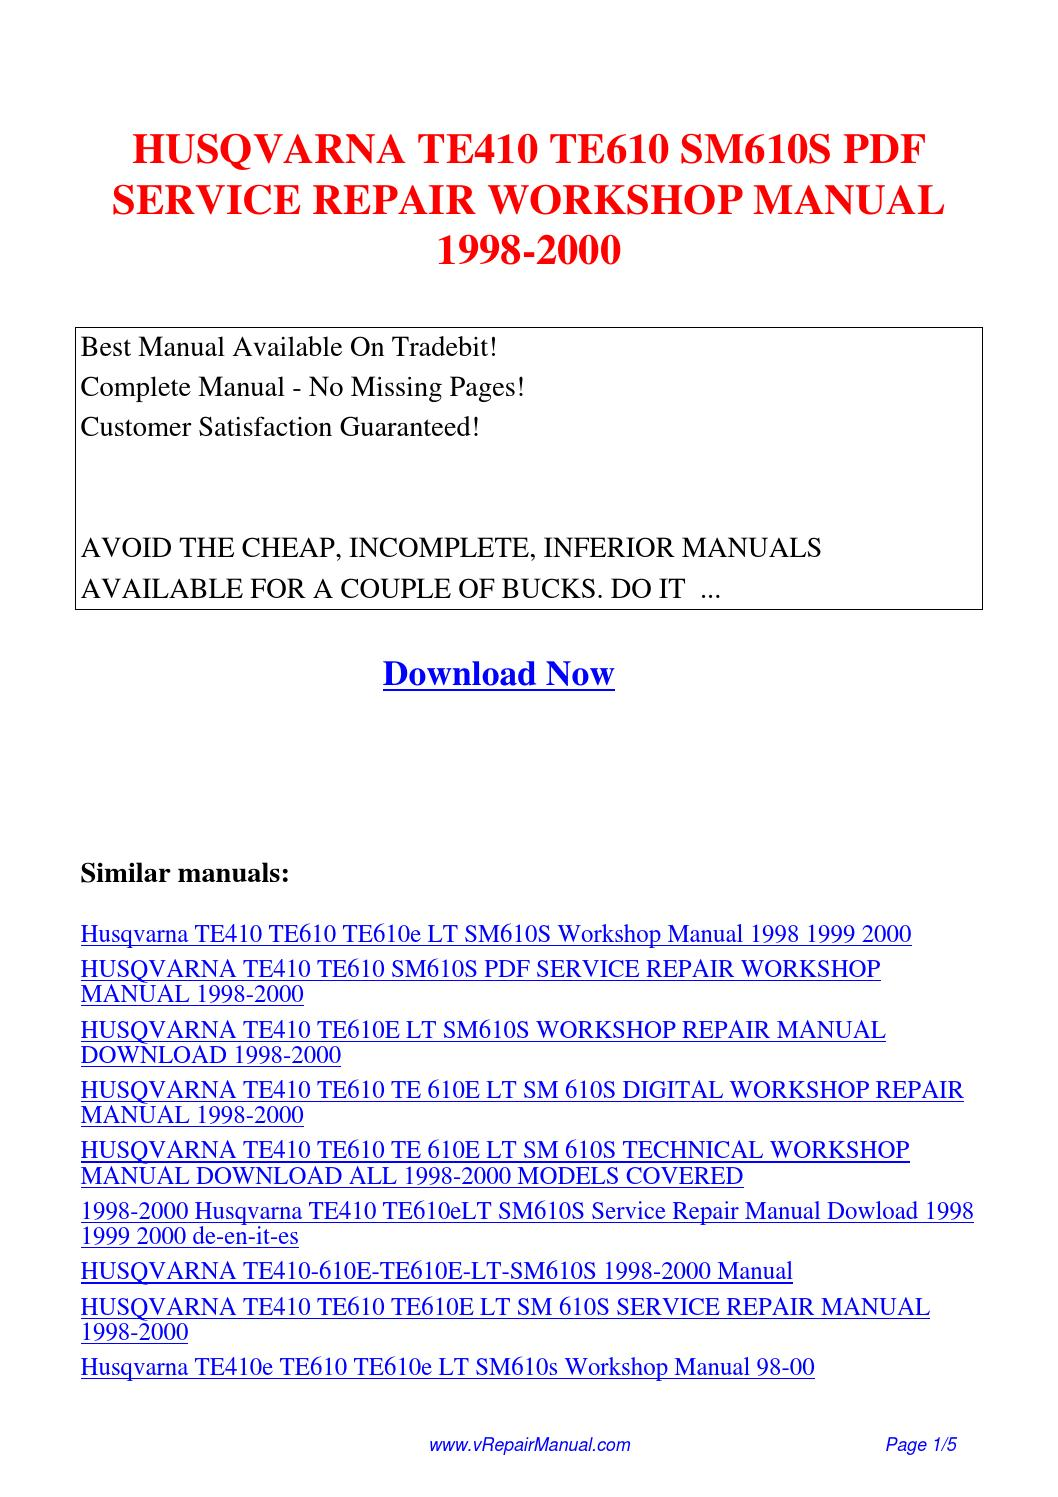 HUSQVARNA TE410 TE610 SM610S SERVICE REPAIR WORKSHOP MANUAL 1998-2000.pdf  by David Zhang - issuu